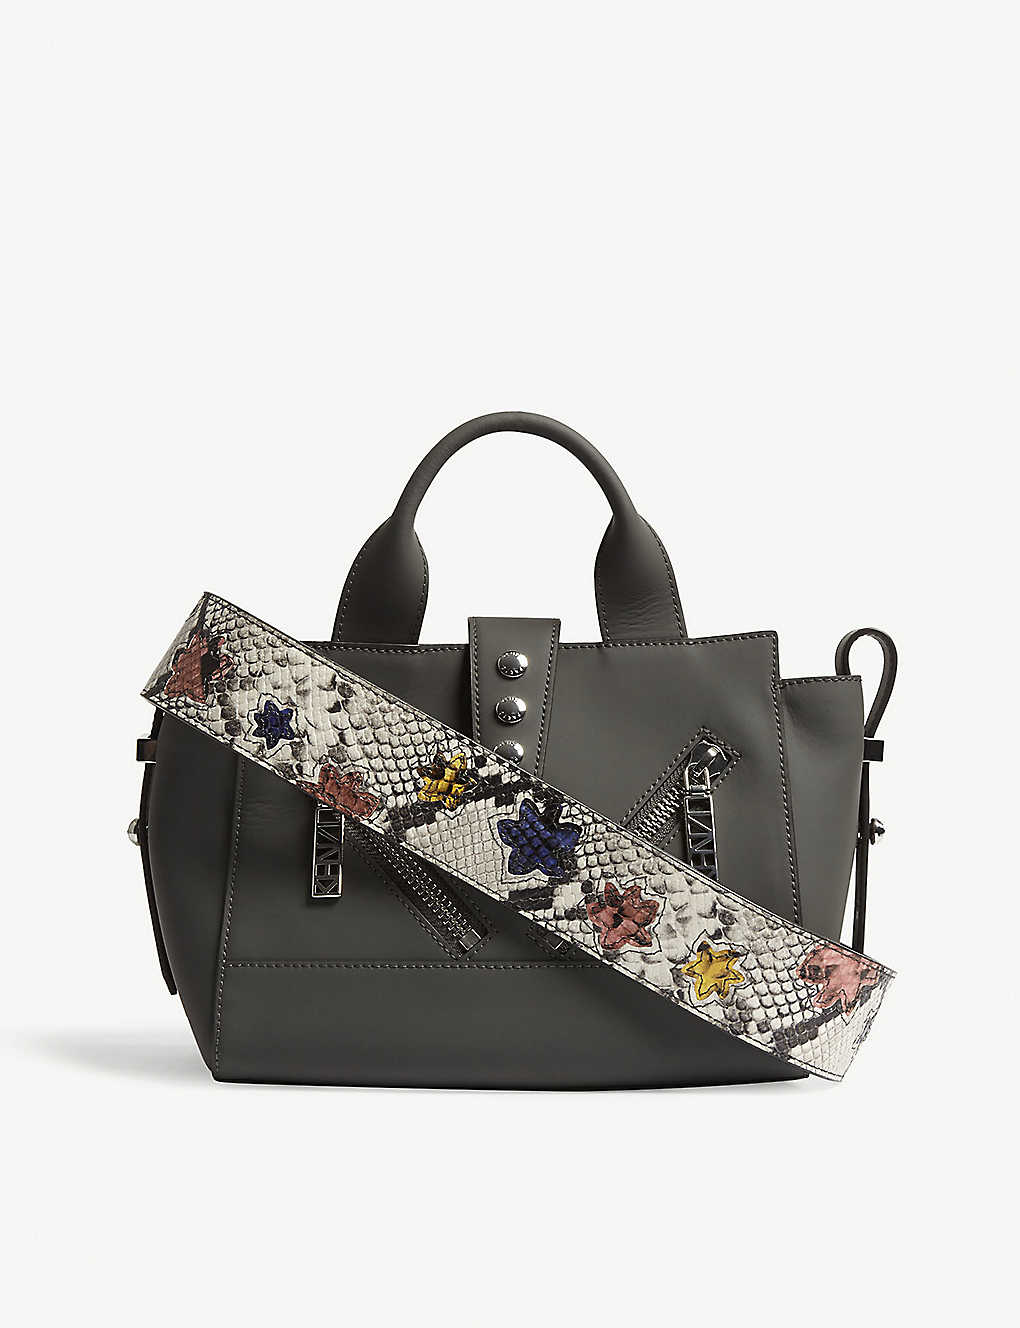 3ecb1737ddf KENZO - Kalifornia leather tote bag | Selfridges.com